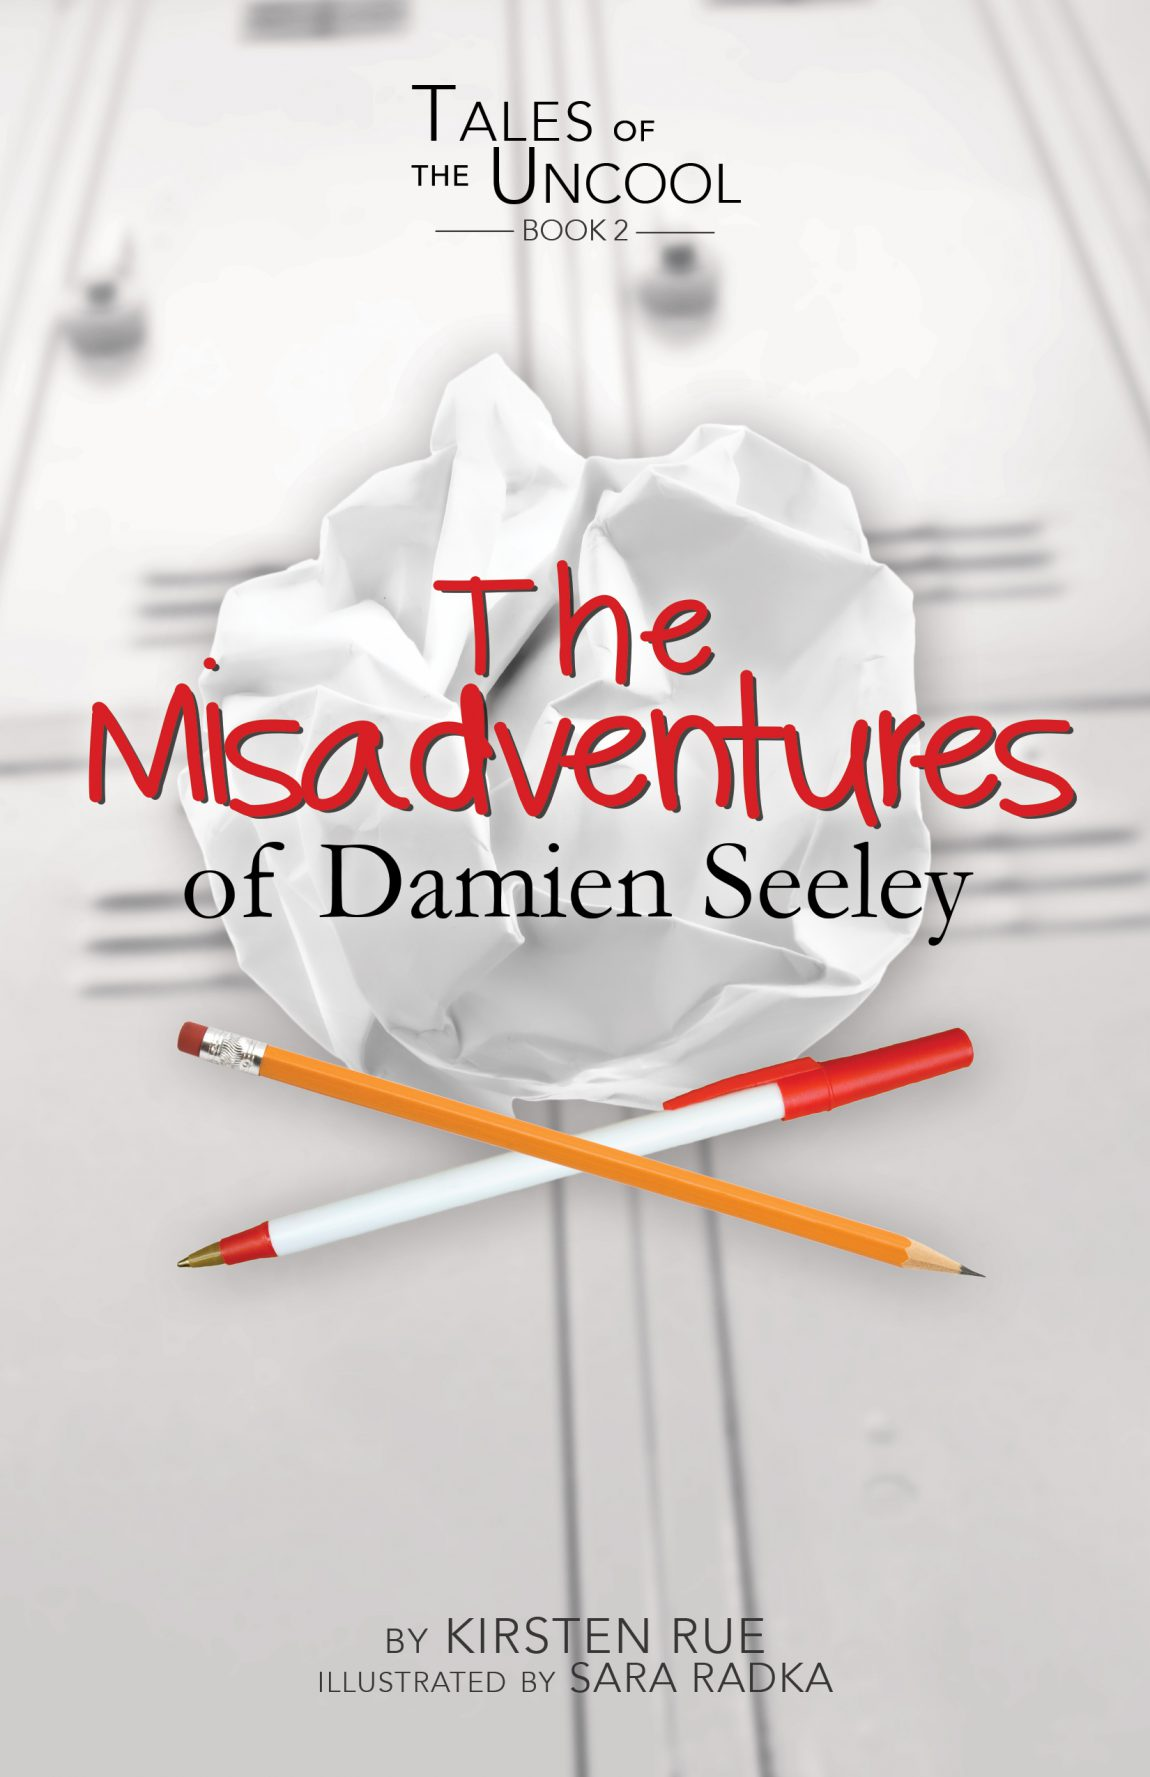 The-Misadventures-of-Damien-Seeley-1.jpg